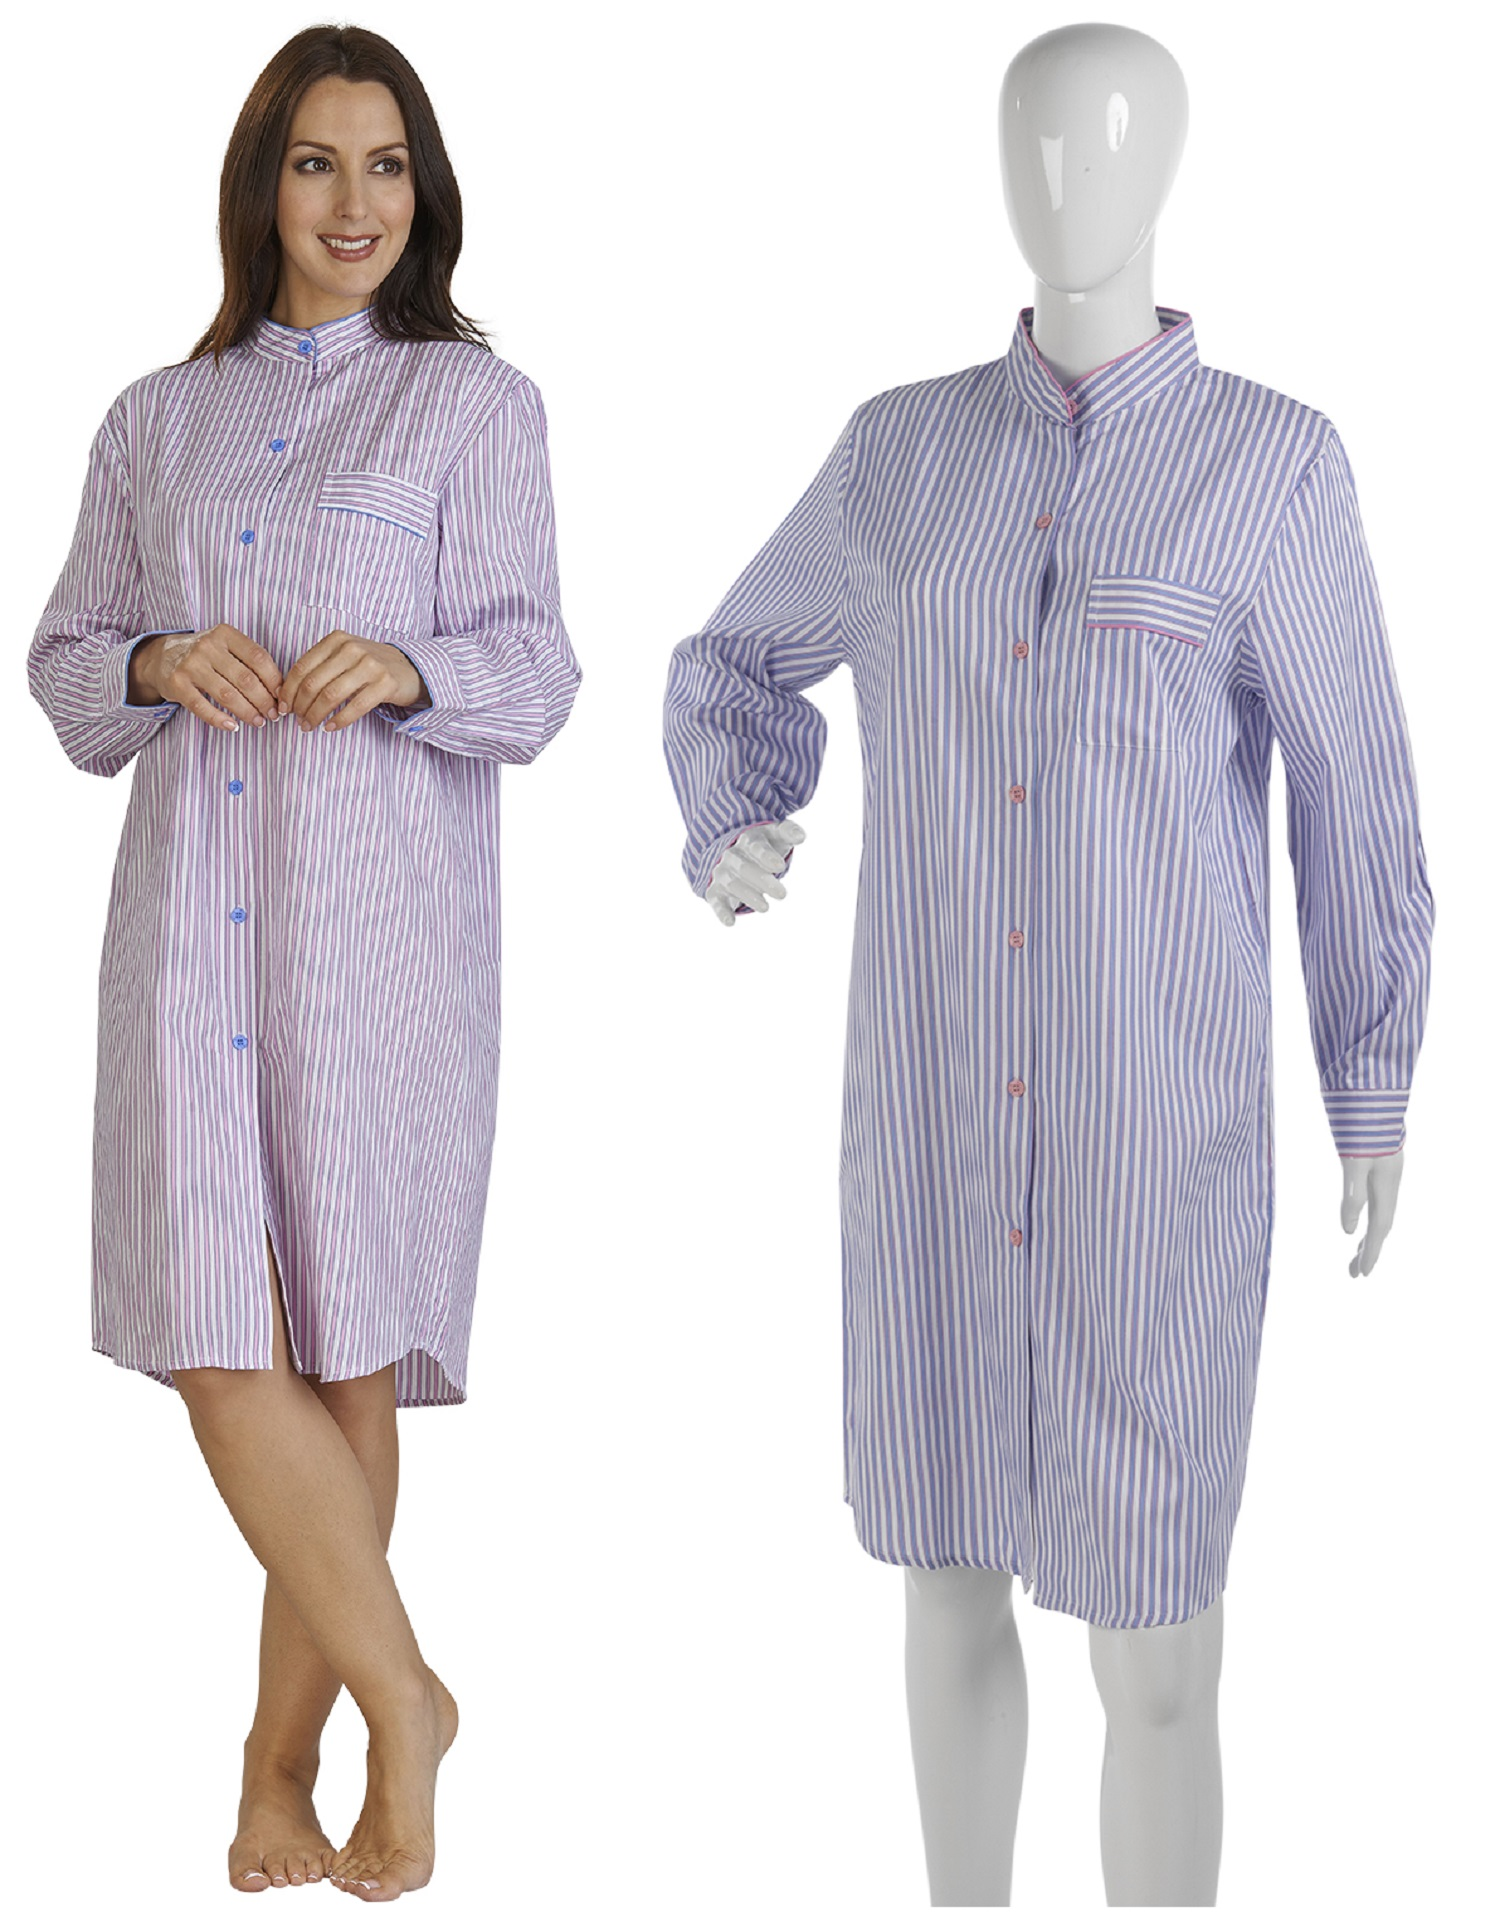 Ladies jacquard striped cotton nightie womens slenderella for Cotton shirts for womens online